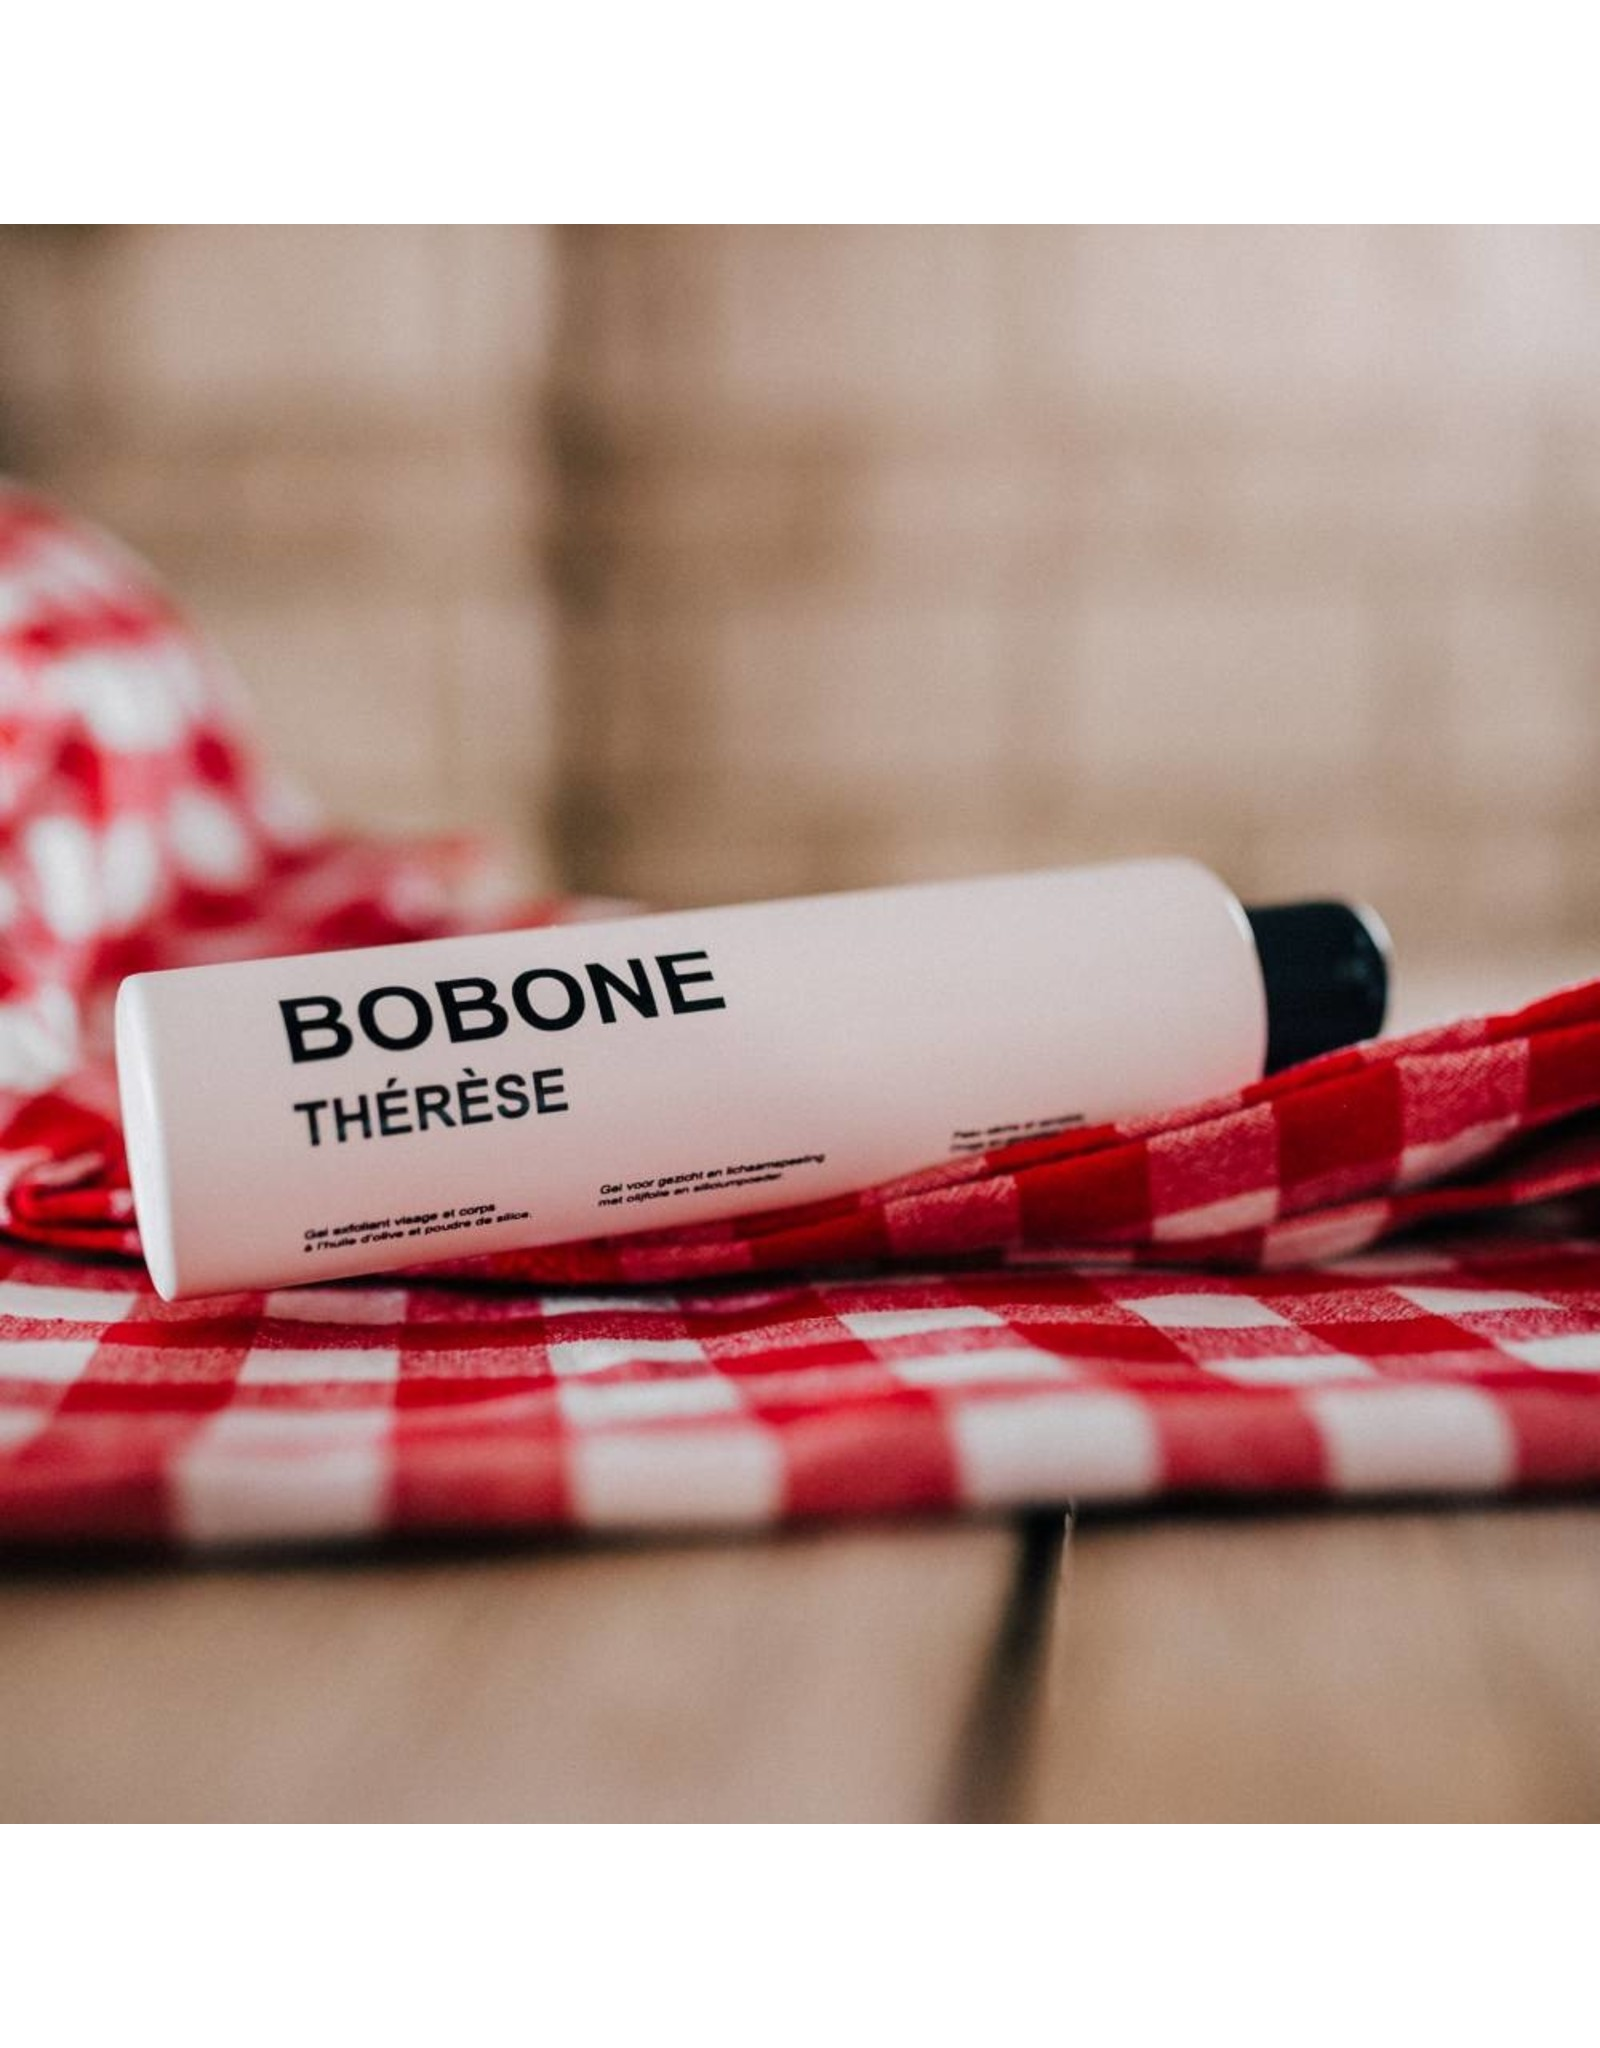 BOBONE Gel Exfoliant Visage et corps THERESE 185ml